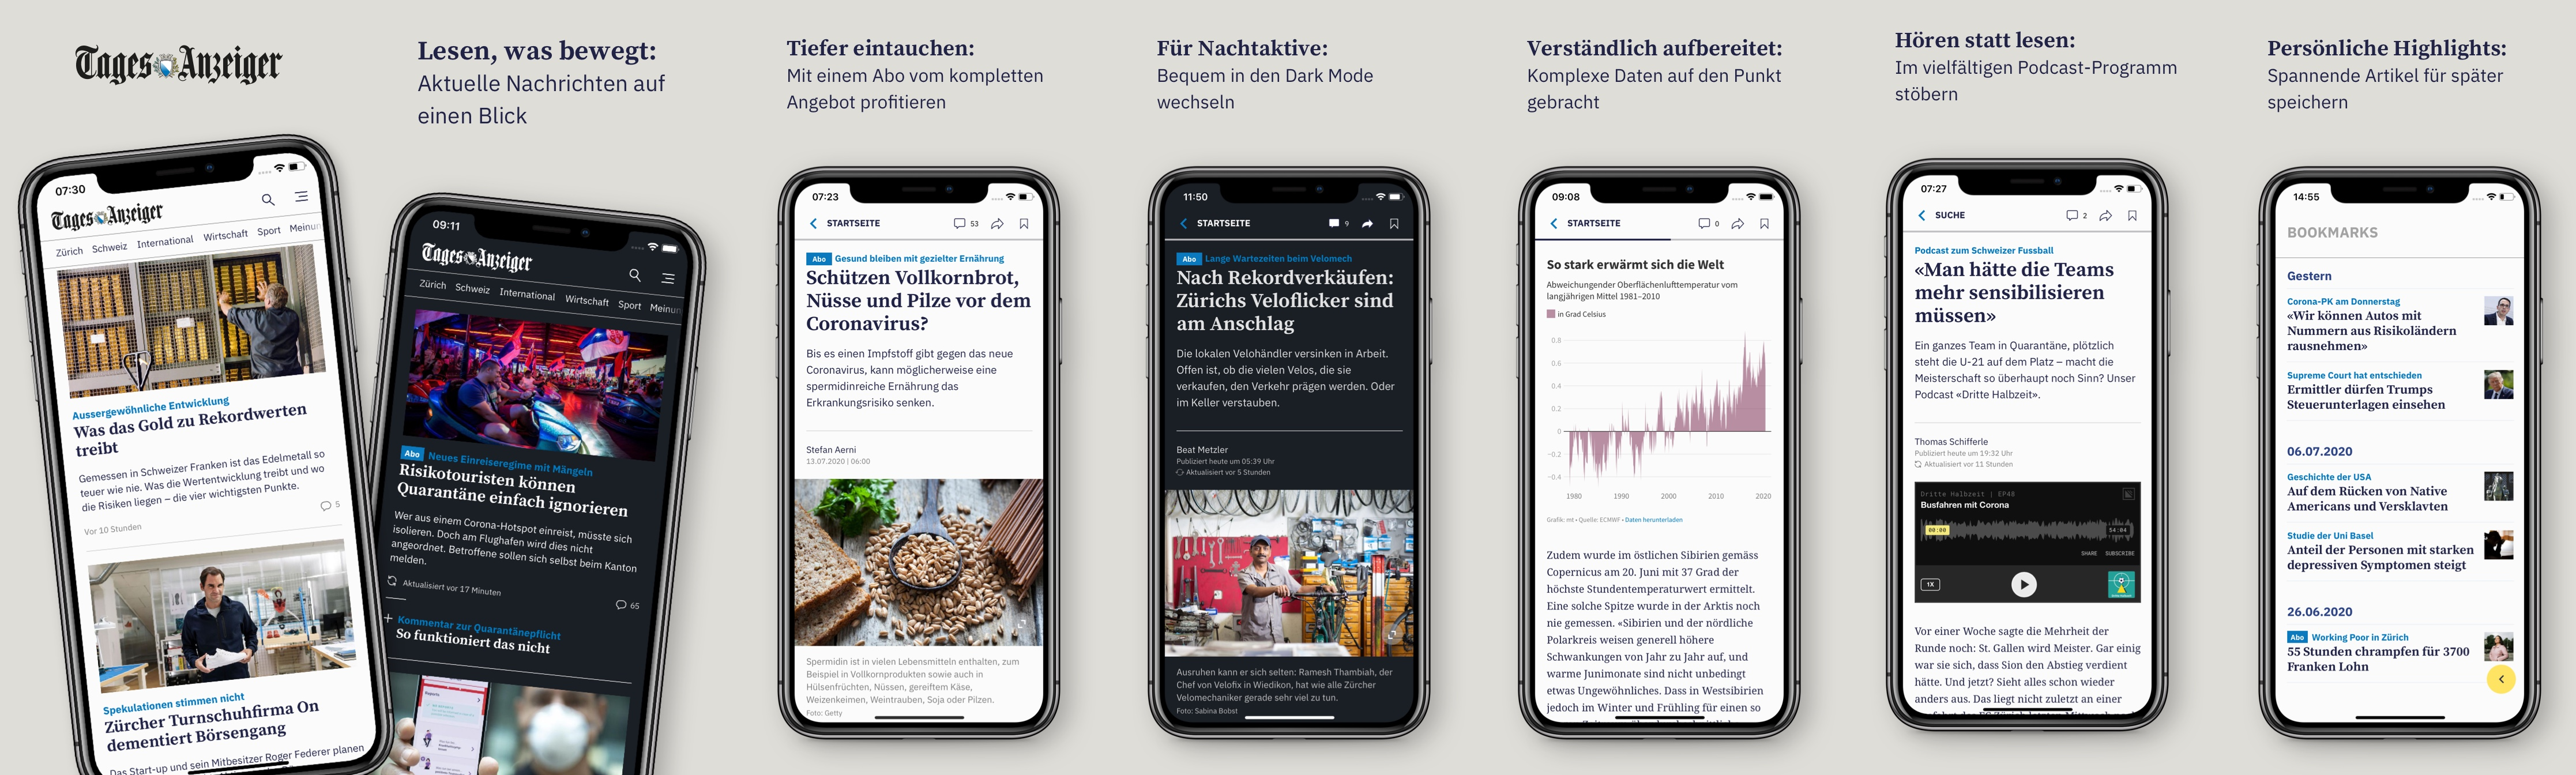 Tages-Anzeiger_App_Overview